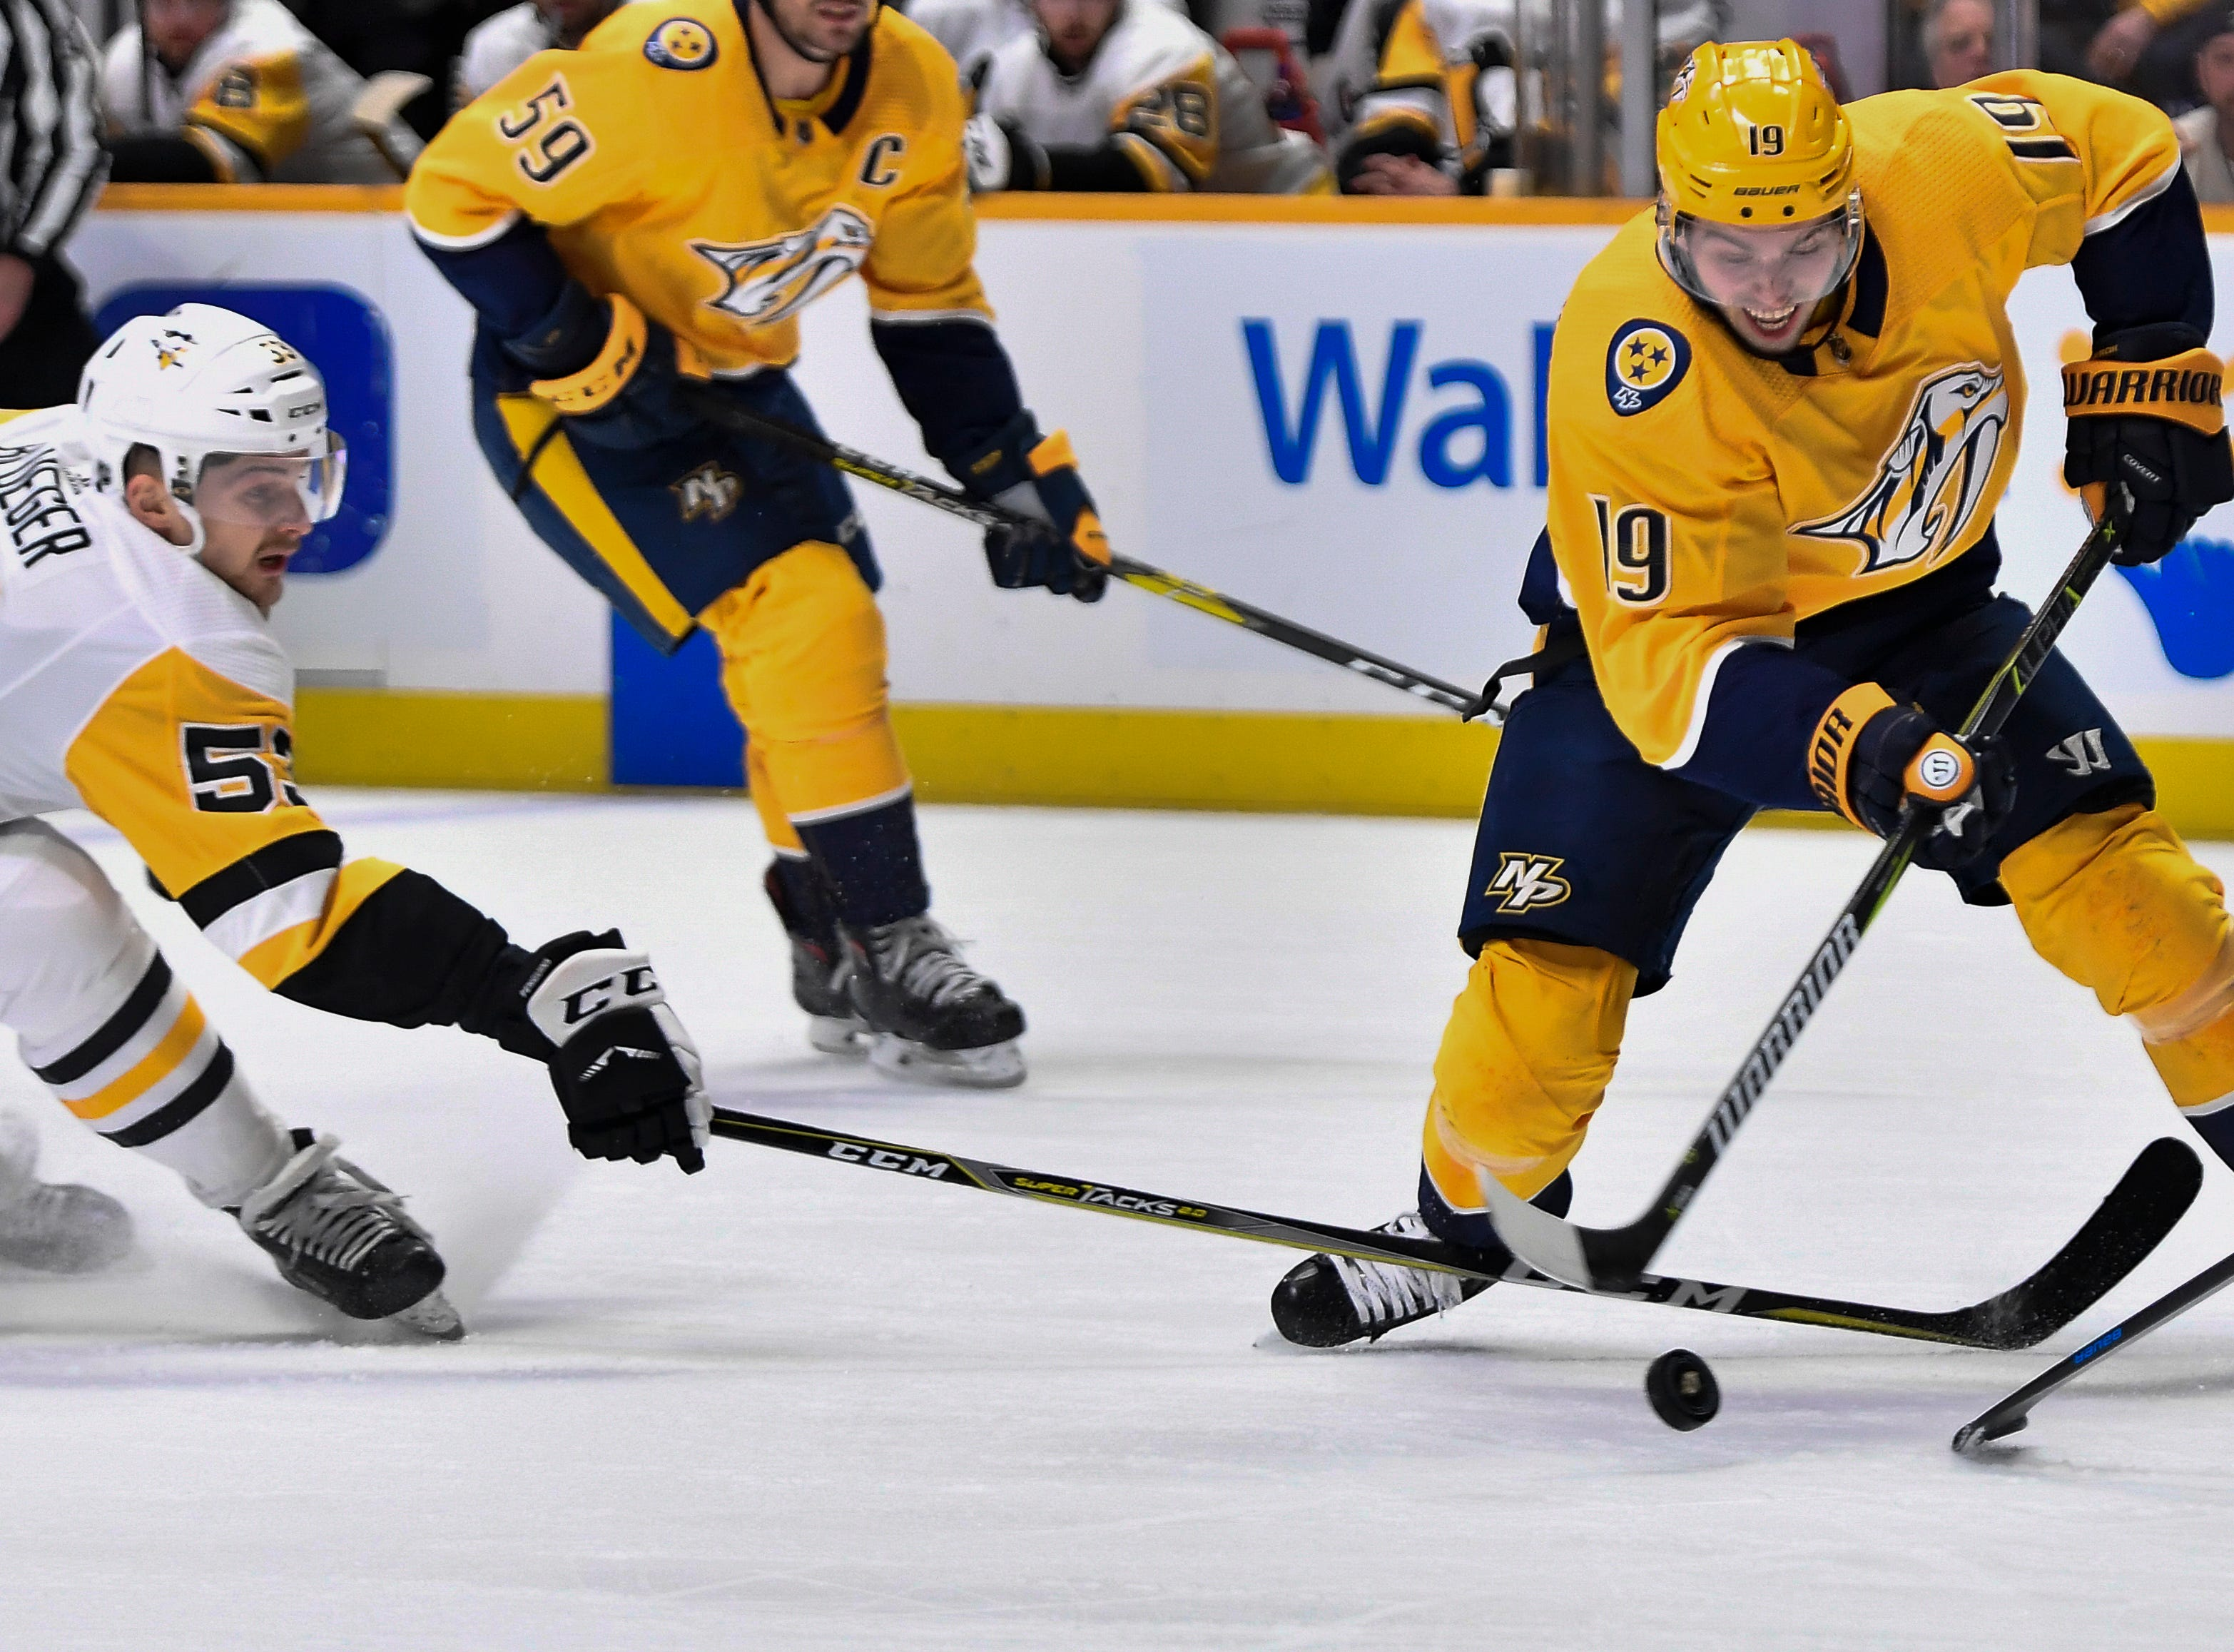 Predators center Calle Jarnkrok (19) shoots past Penguins center Teddy Blueger (53) during the first period at Bridgestone Arena Thursday, March 21, 2019 in Nashville, Tenn.